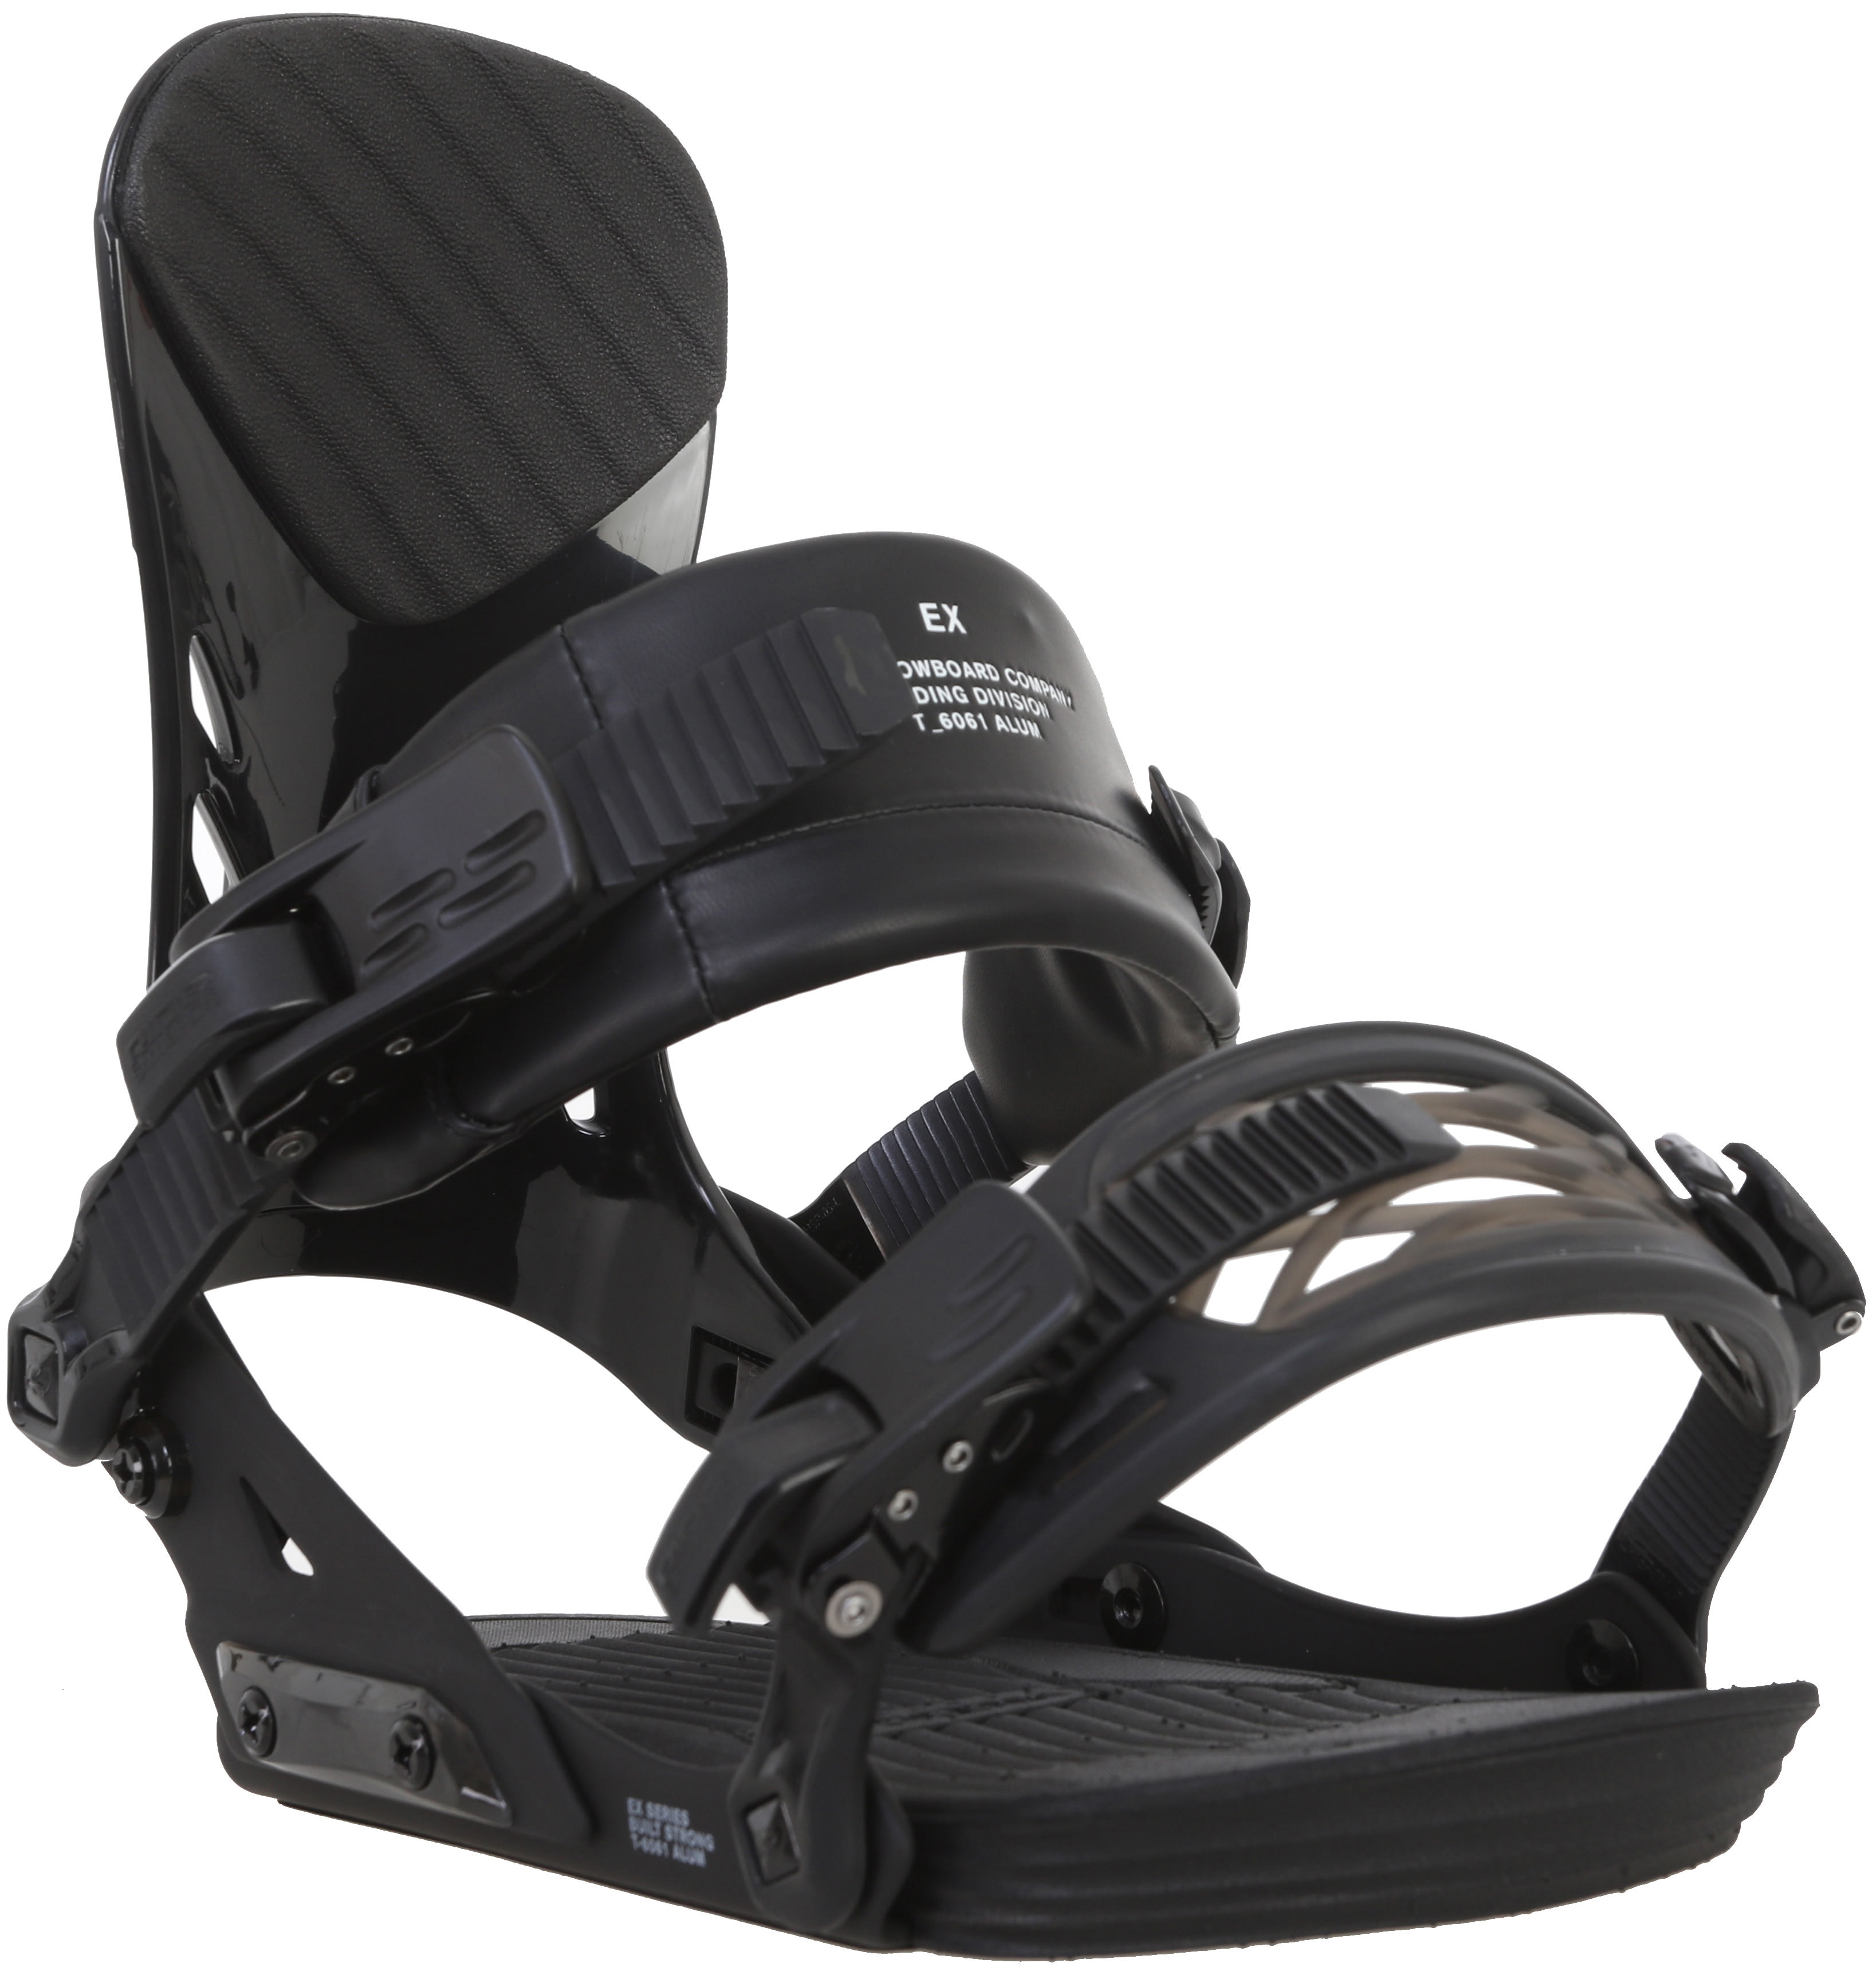 On Sale Ride EX Snowboard Bindings Up To 40% Off